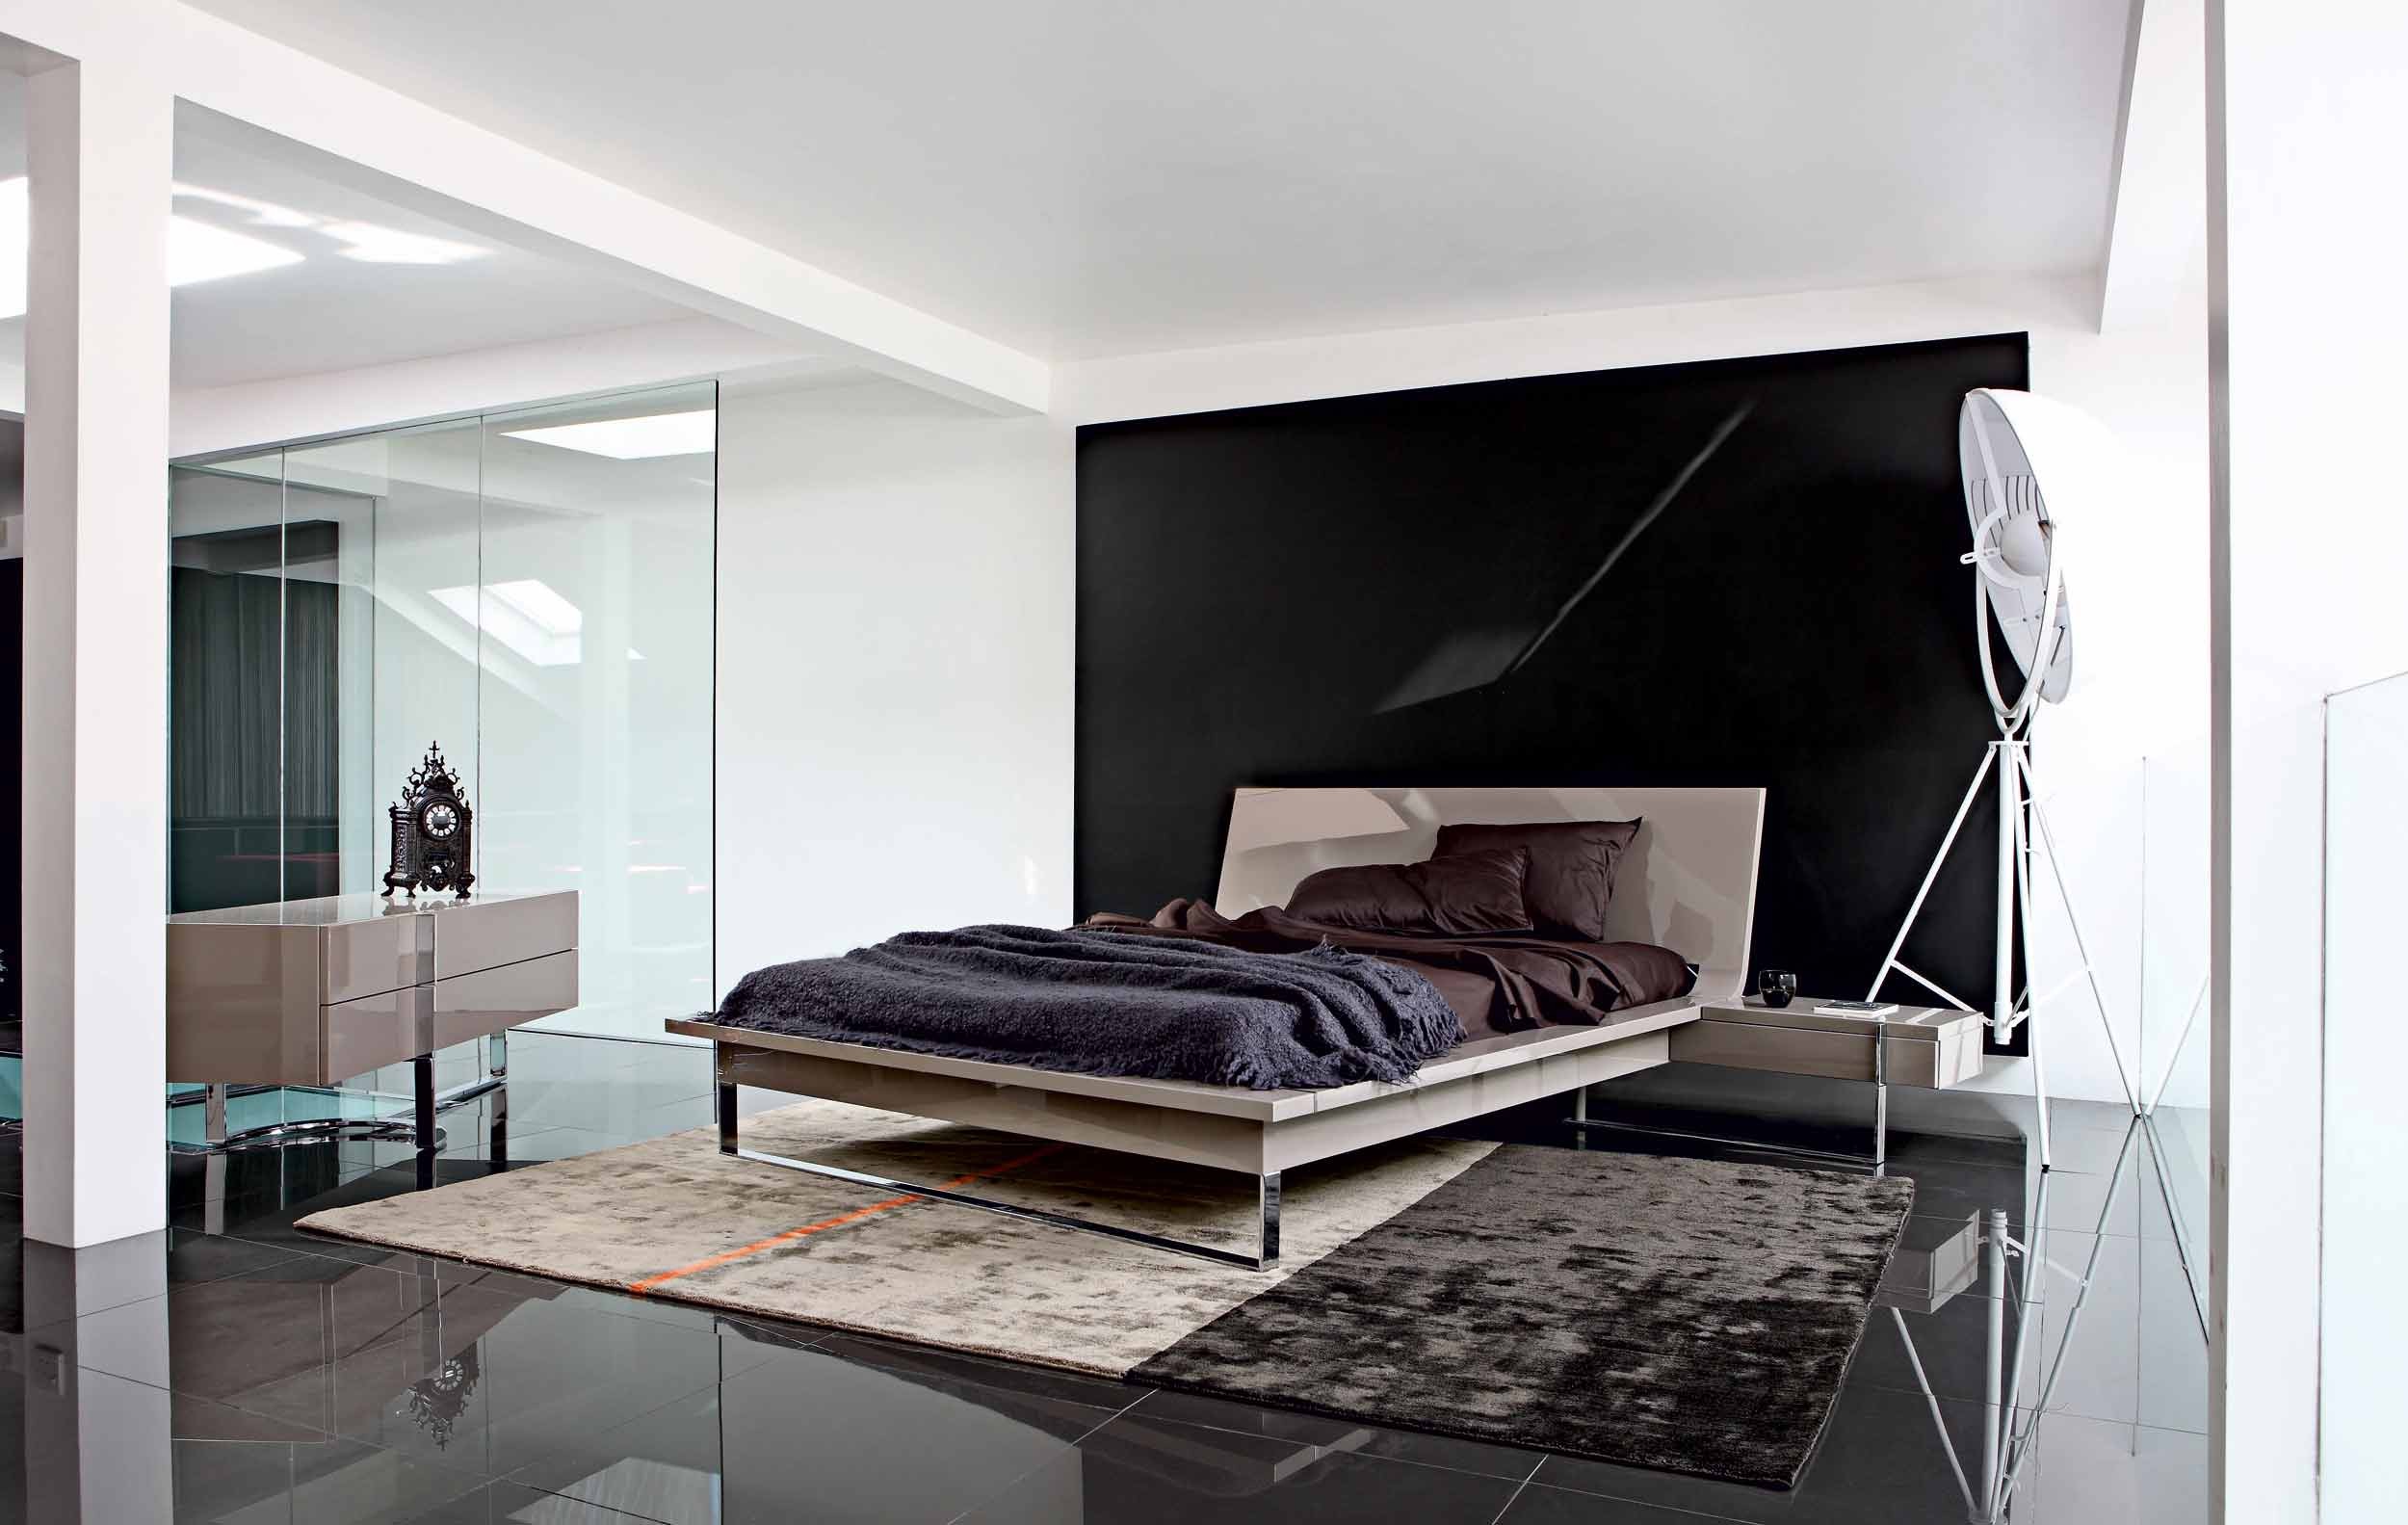 Minimalist bedroom interior design ideas for Minimalist room decor